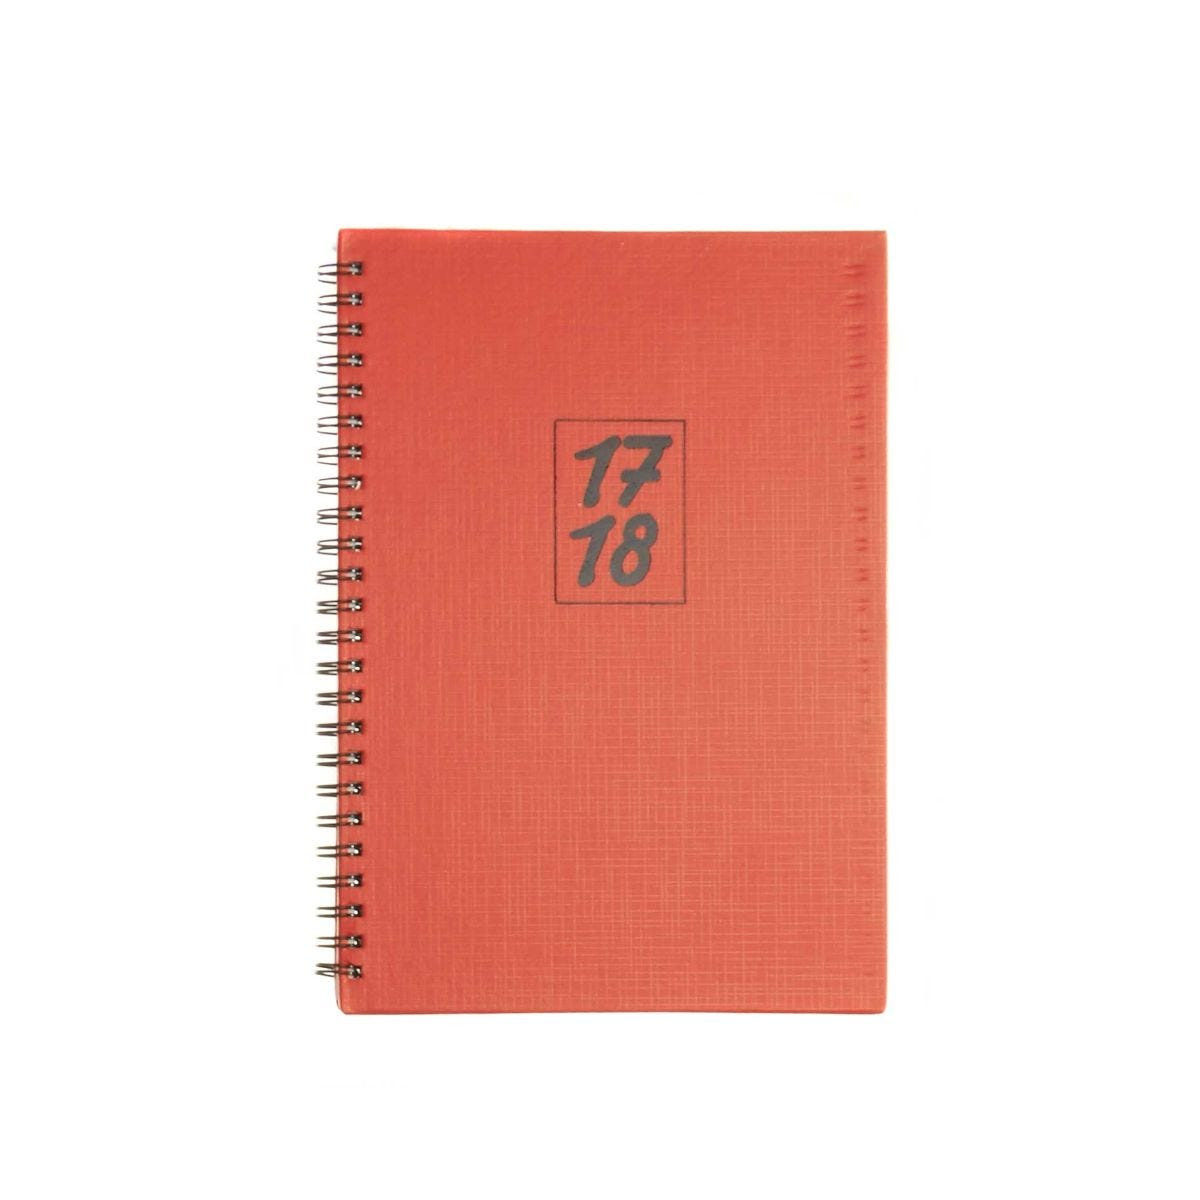 Ryman Mid Year Diary A5 Week to View 2017-2018 Essentials Wiro, Red.